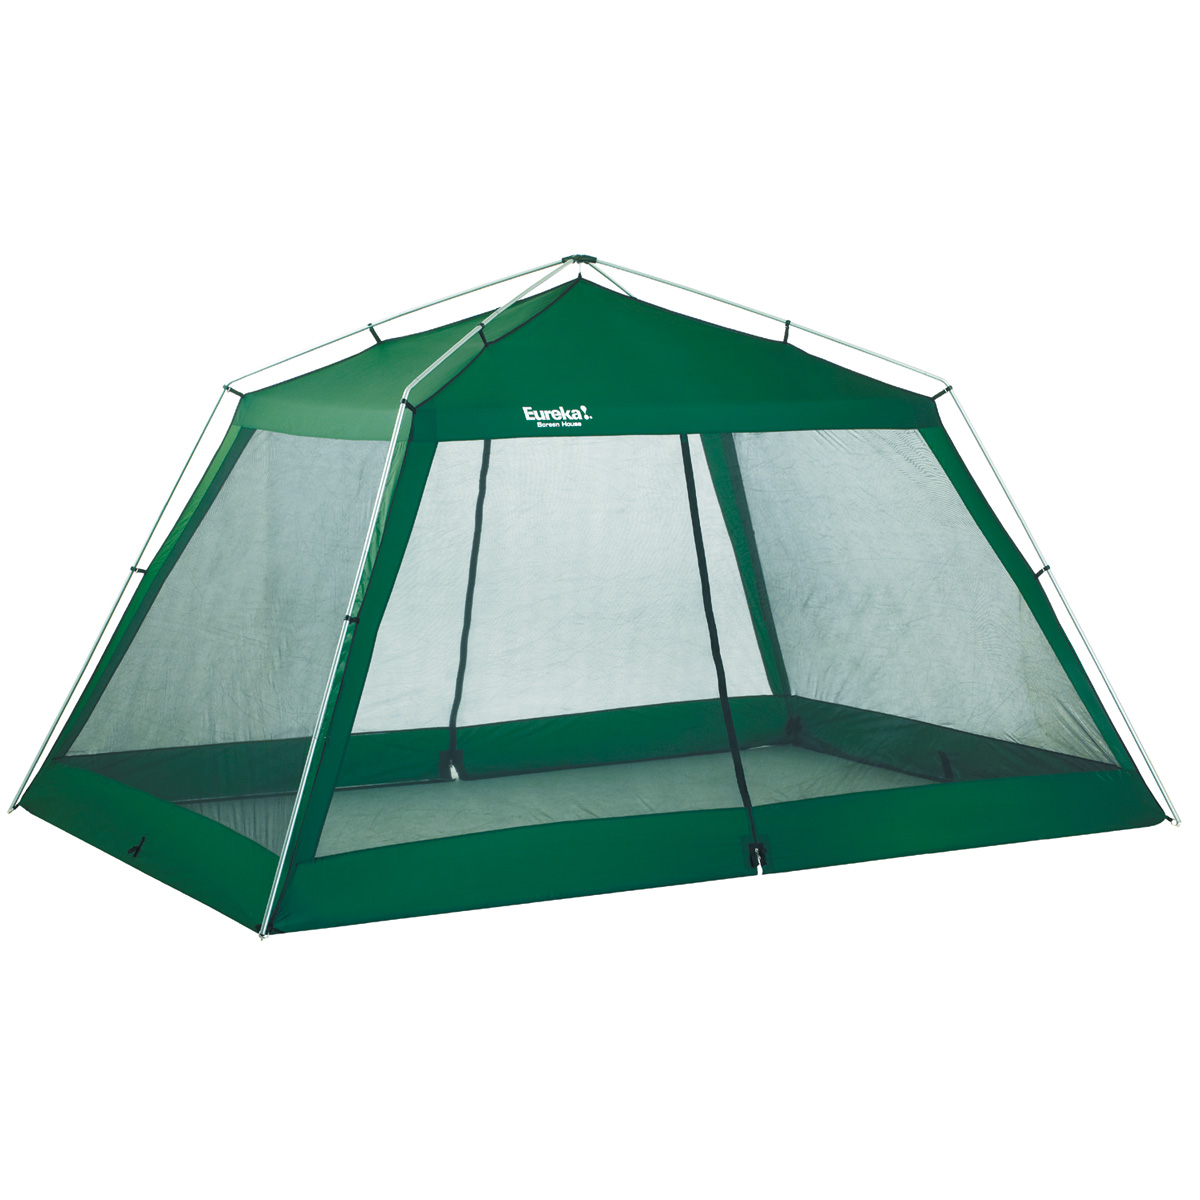 External Frame Screen House  sc 1 st  Tents | Eureka! - Johnson Outdoors & External Frame Screen House | Eureka!